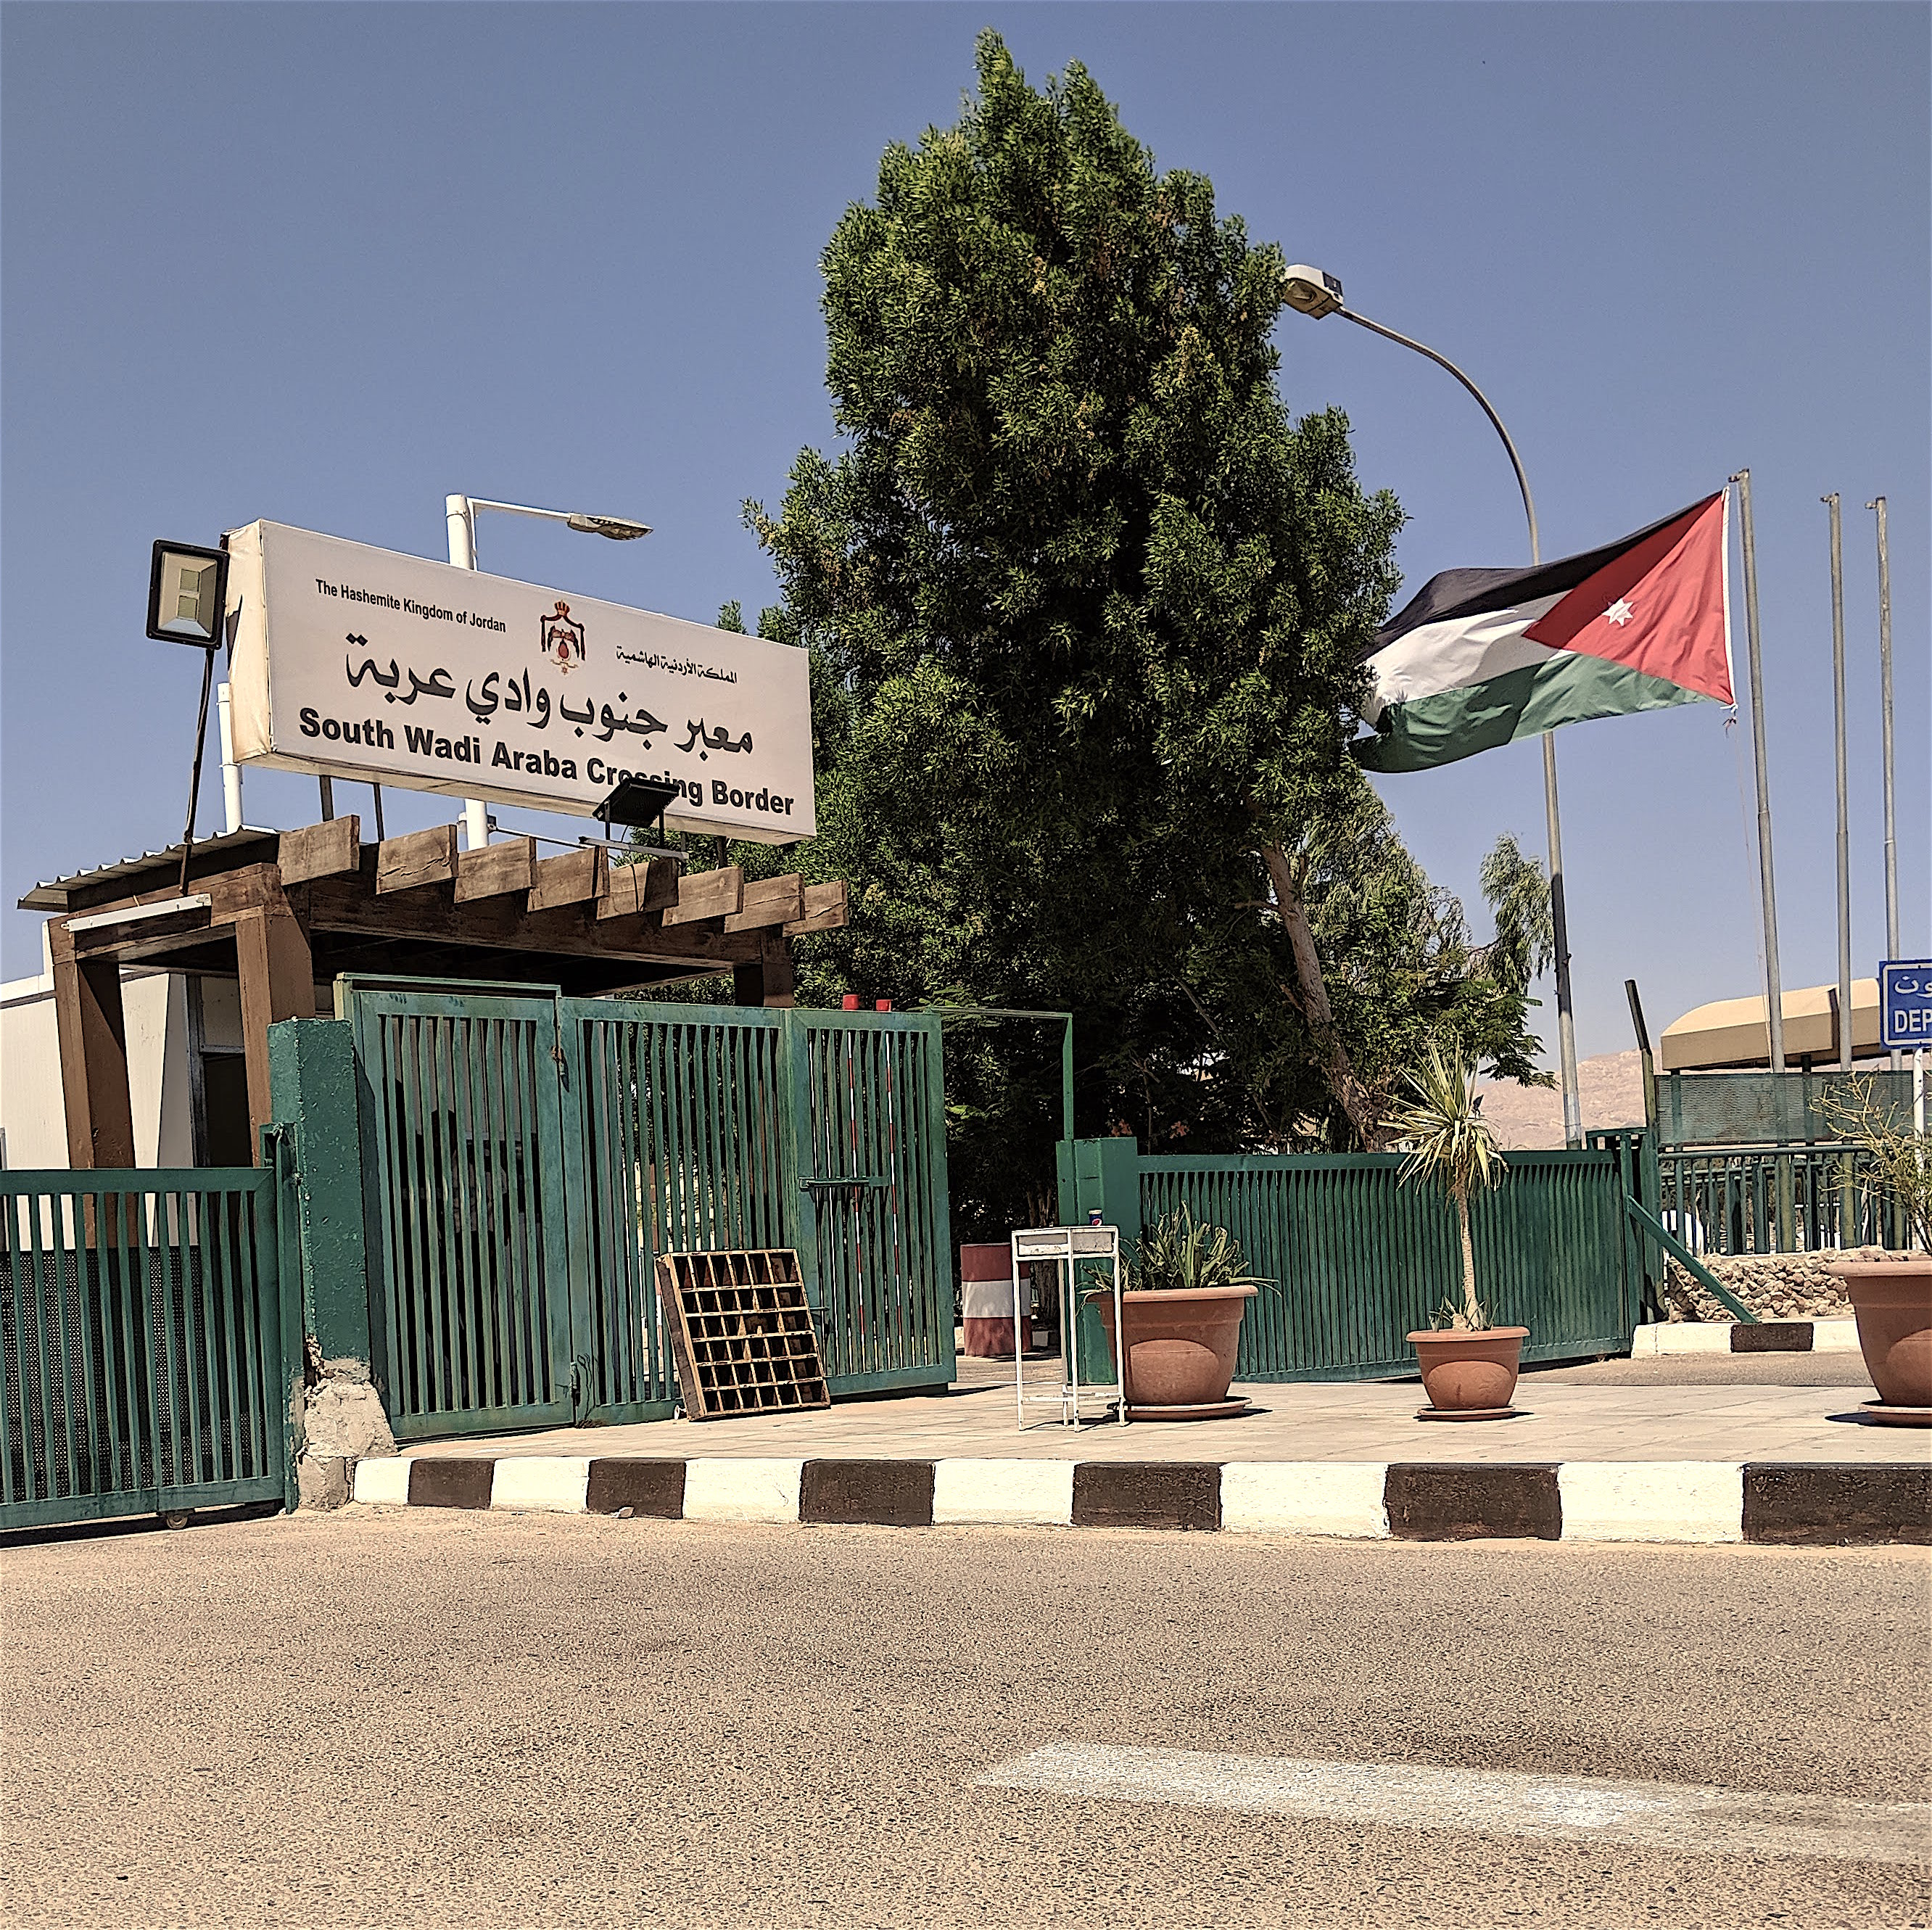 The Jordanian side of the Wadi Araba/Yitzhak Rabin border